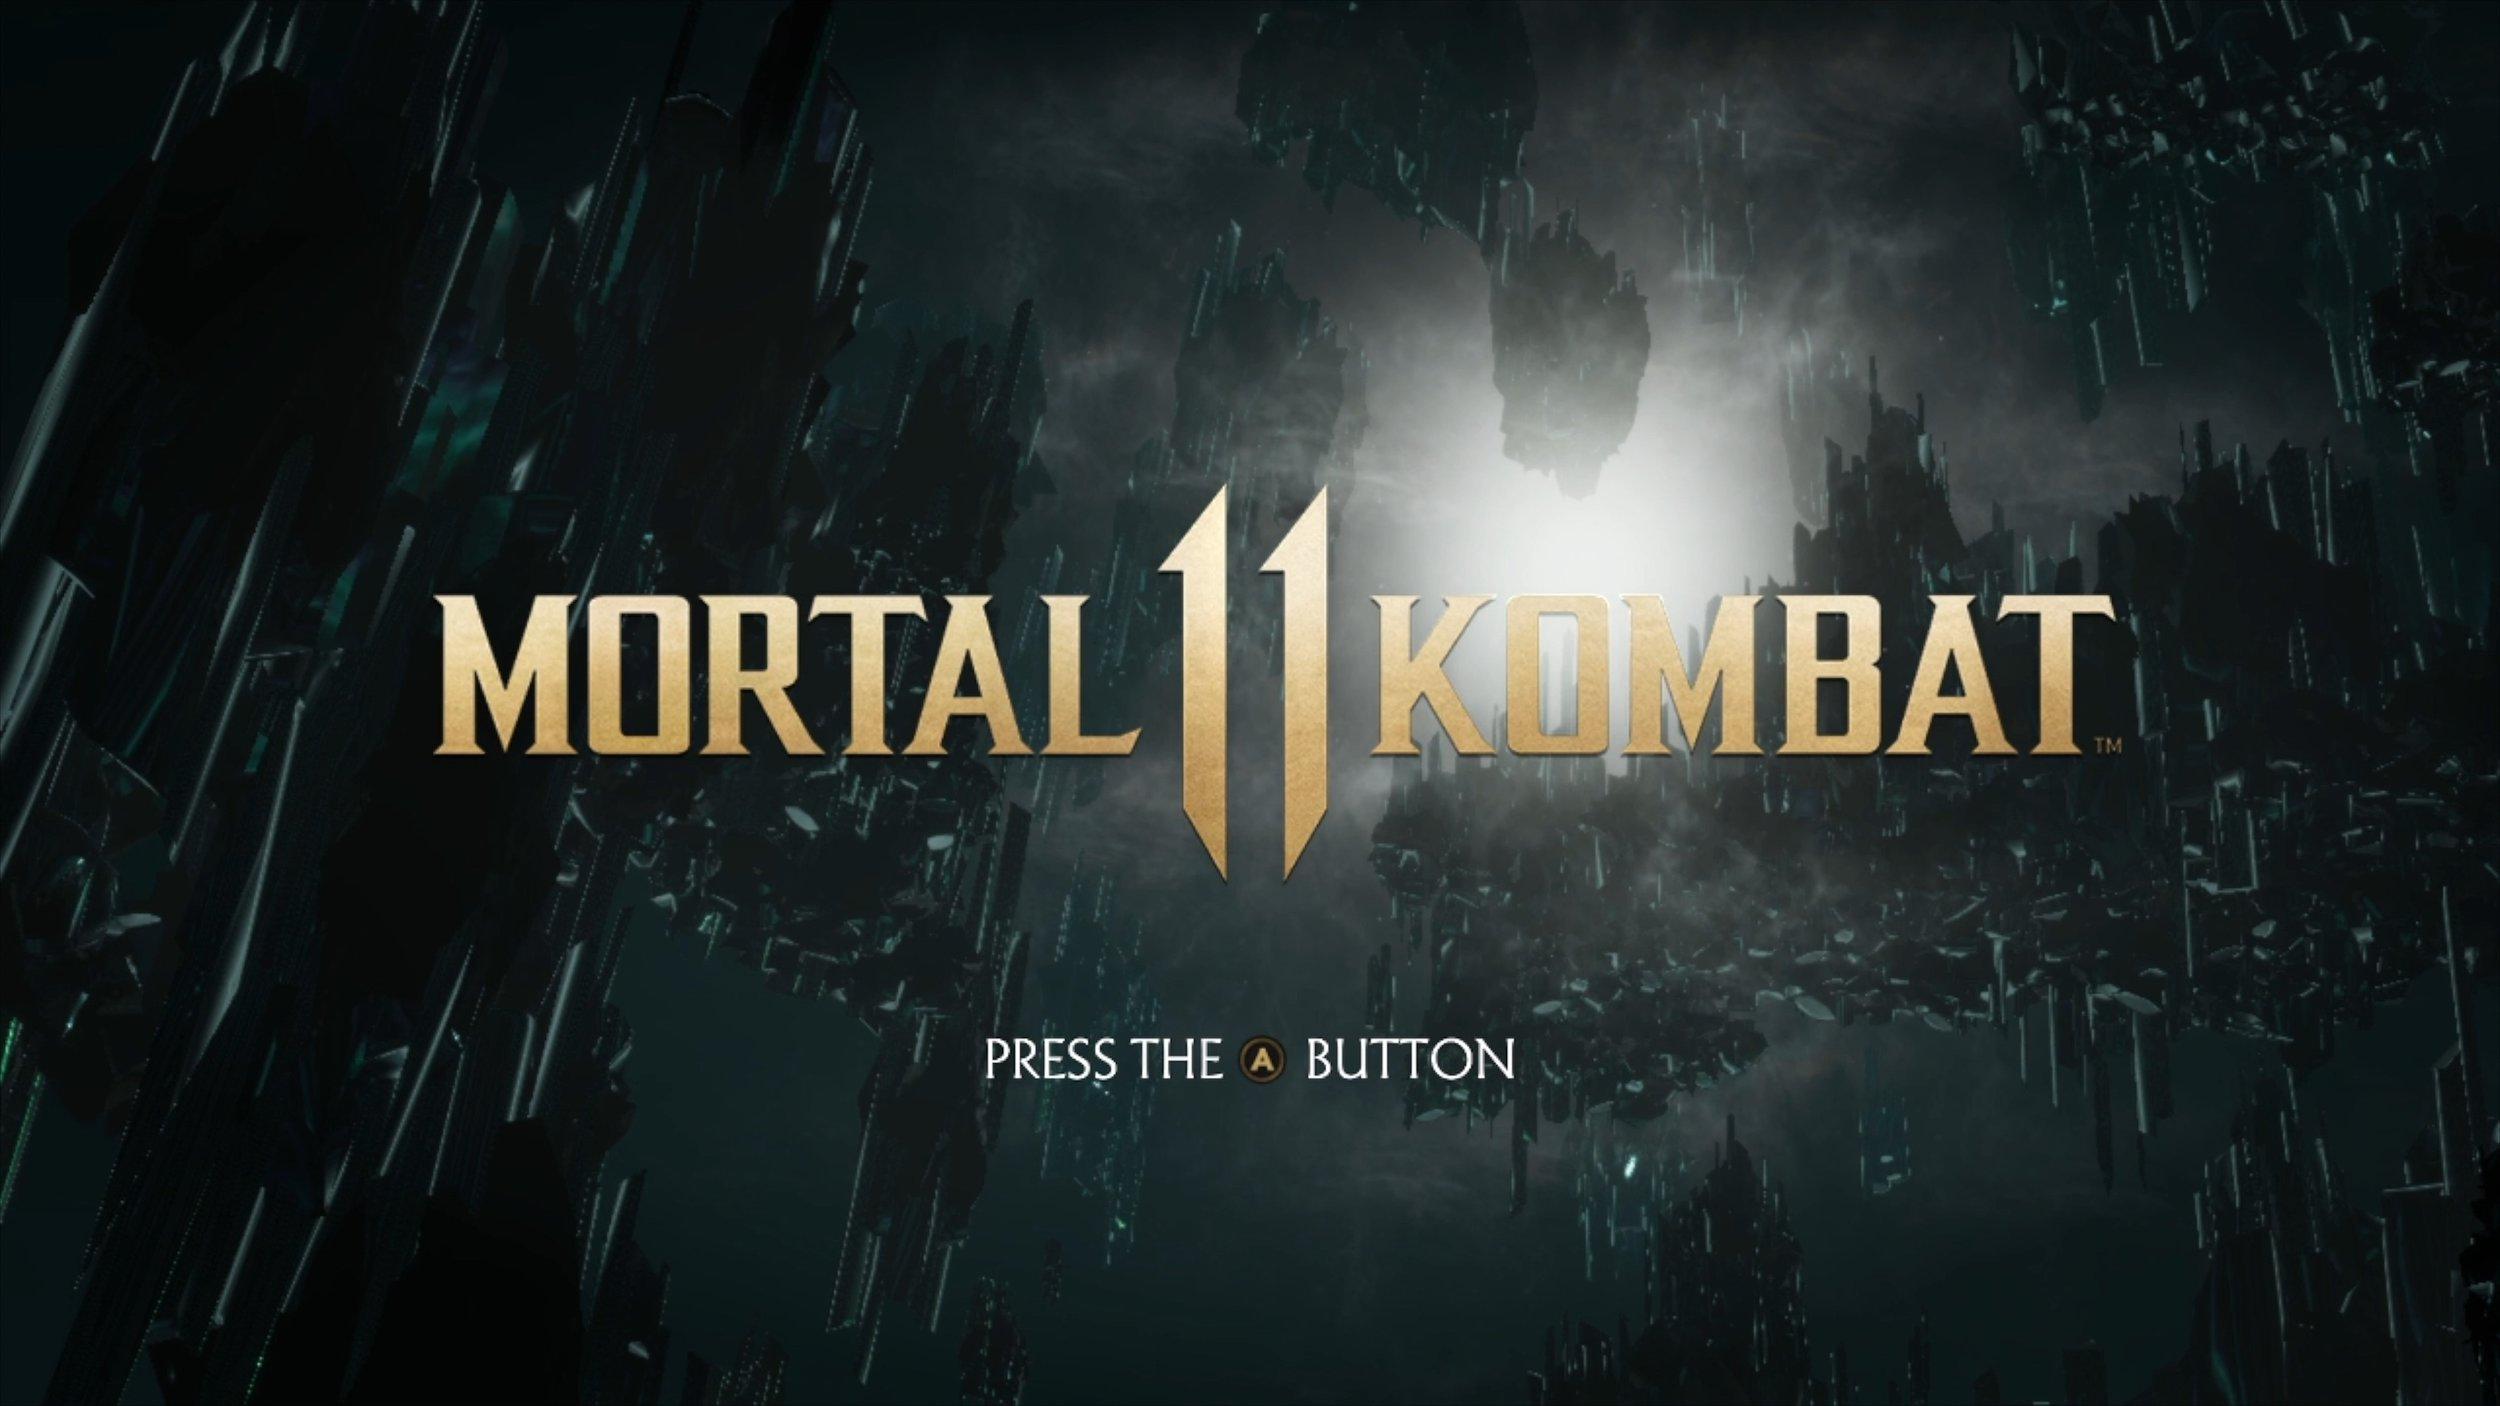 Mortal Kombat 11 boasts a strong fighting engine with excellent potential for more technical fighting, diverse combos and amplified attacks. Unfortunately, I found the enhanced gore of the animations to be a heavy distraction from gameplay rather than a motivation to keep me engaged in learning finishing moves.